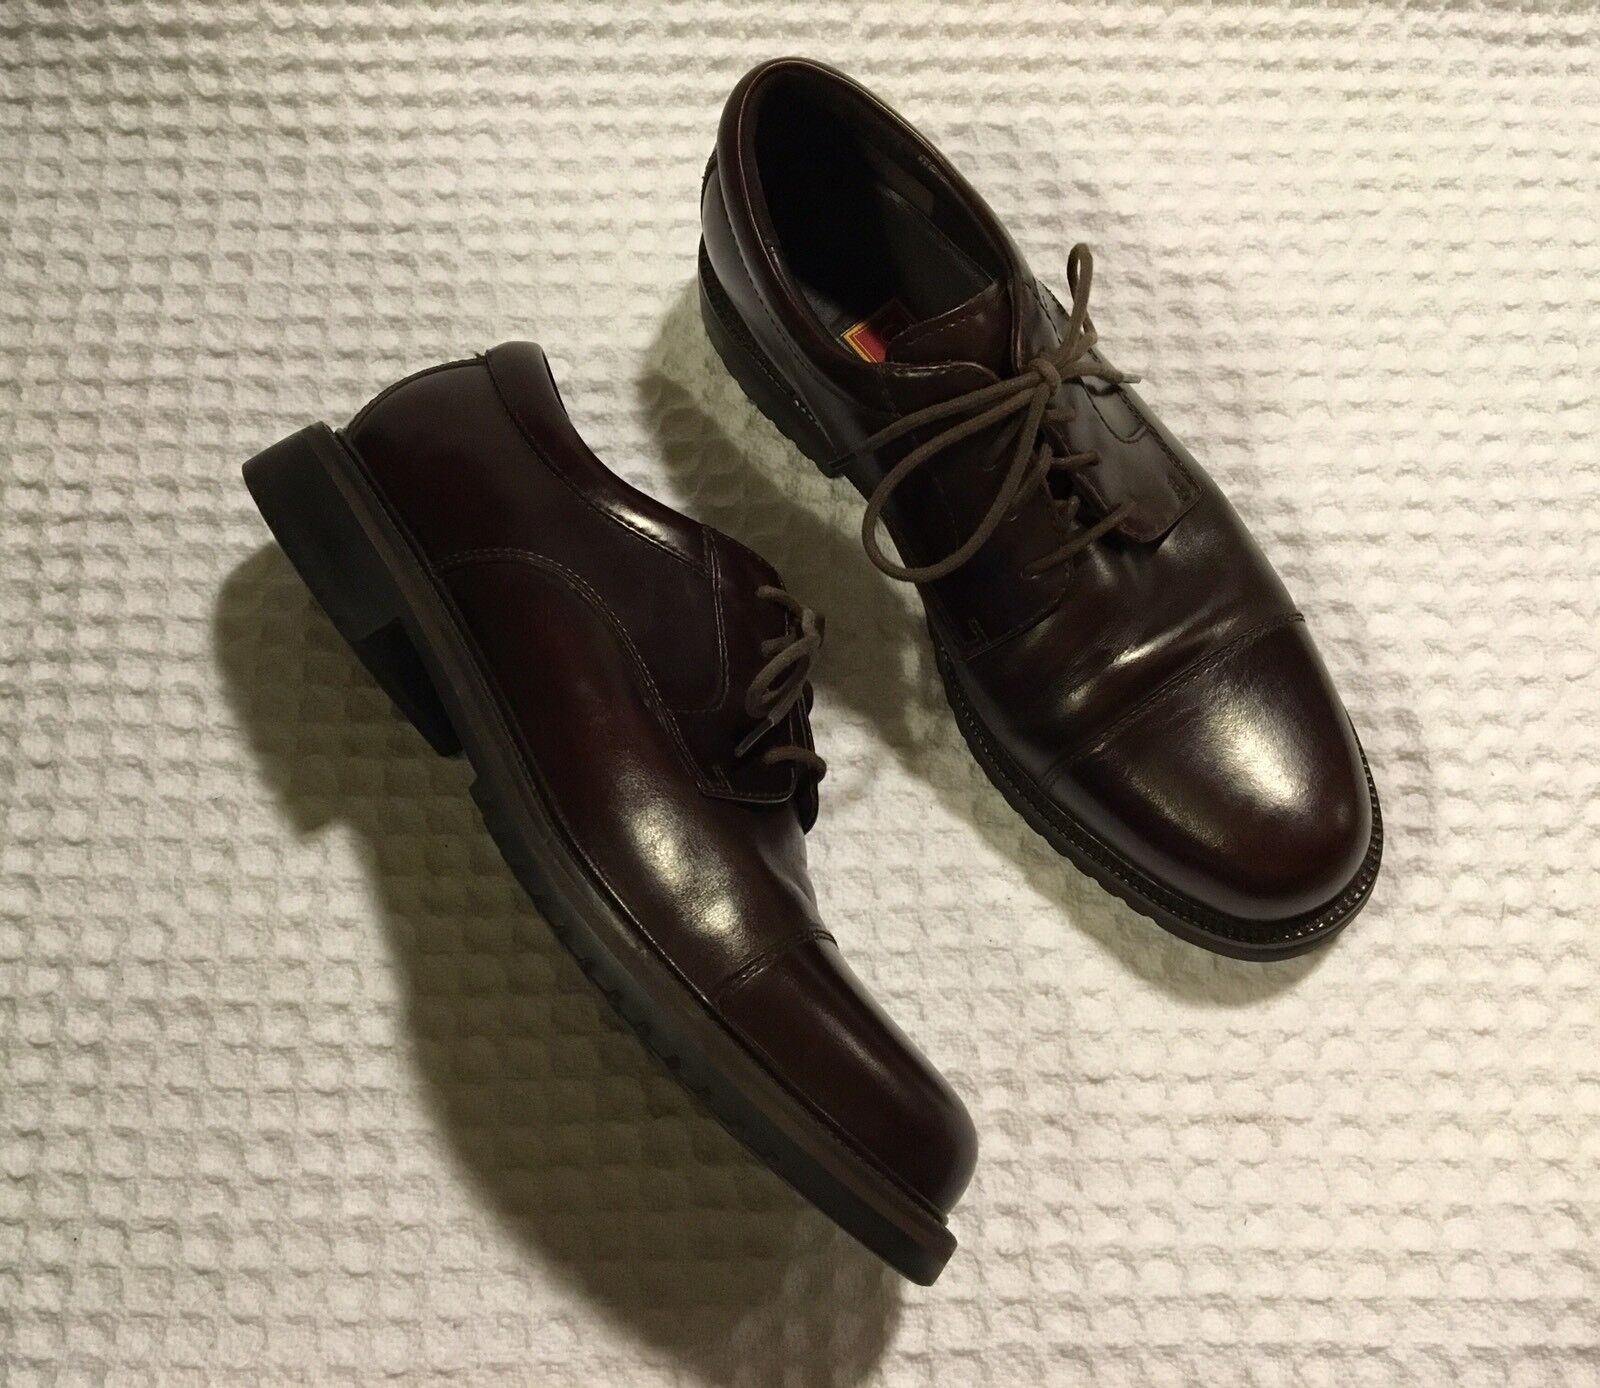 COLE HAAN Country C01920 Waterproof Leather Lace-up shoes Oxfords - Brown 10.5 M